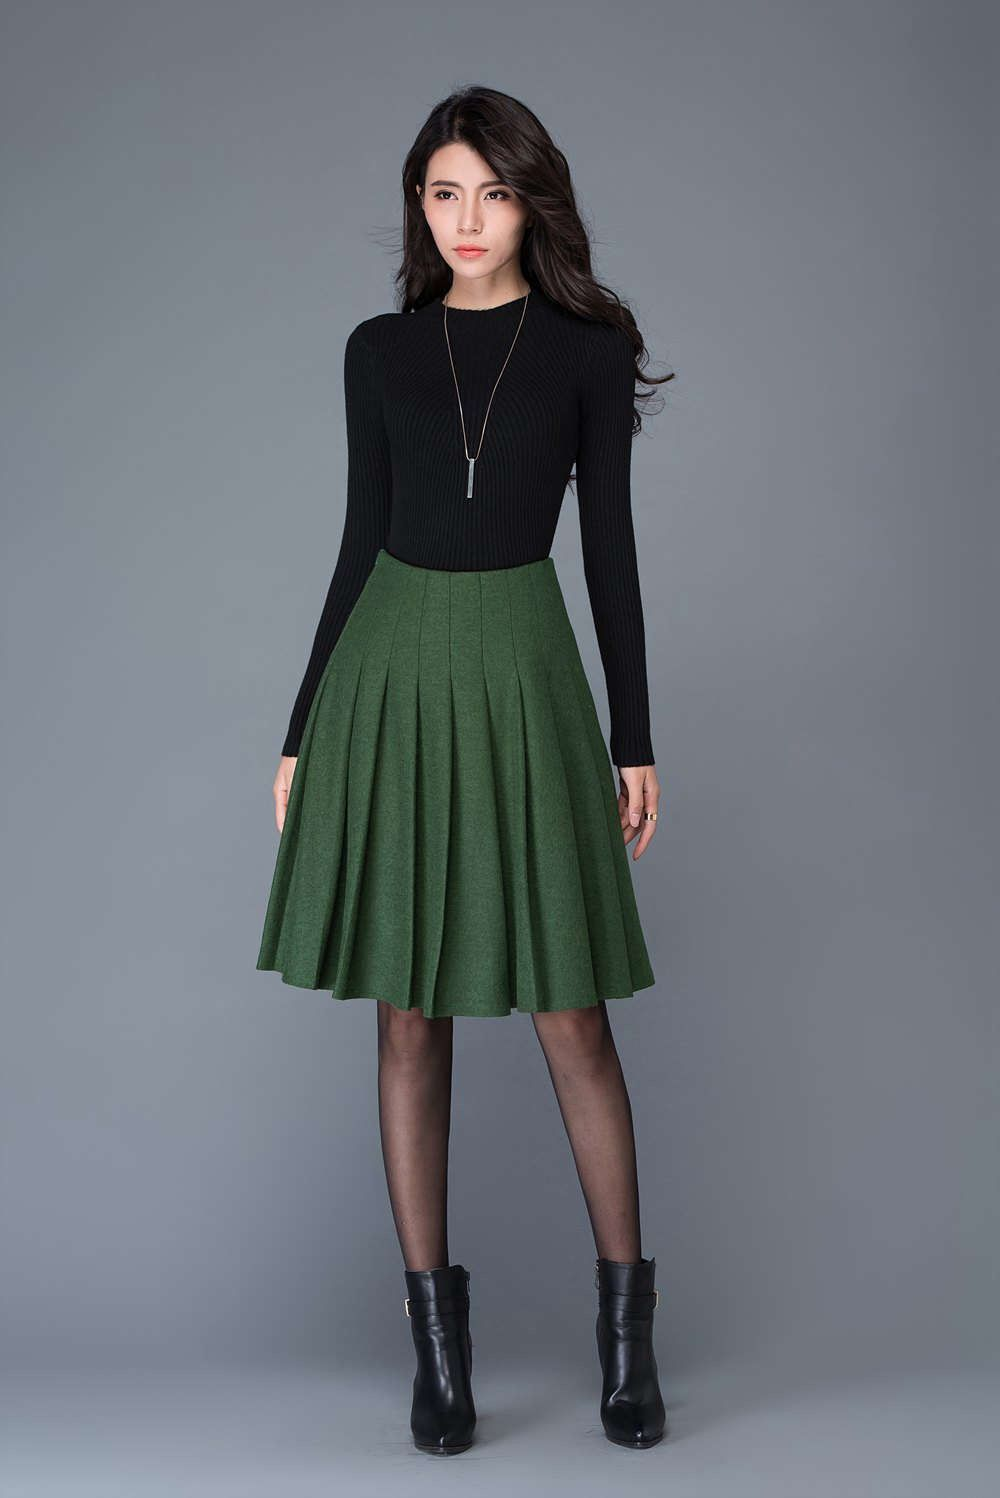 3b492feef47 Green skirt wool skirt Pleated skirt  winter midi skirt  skater skirt